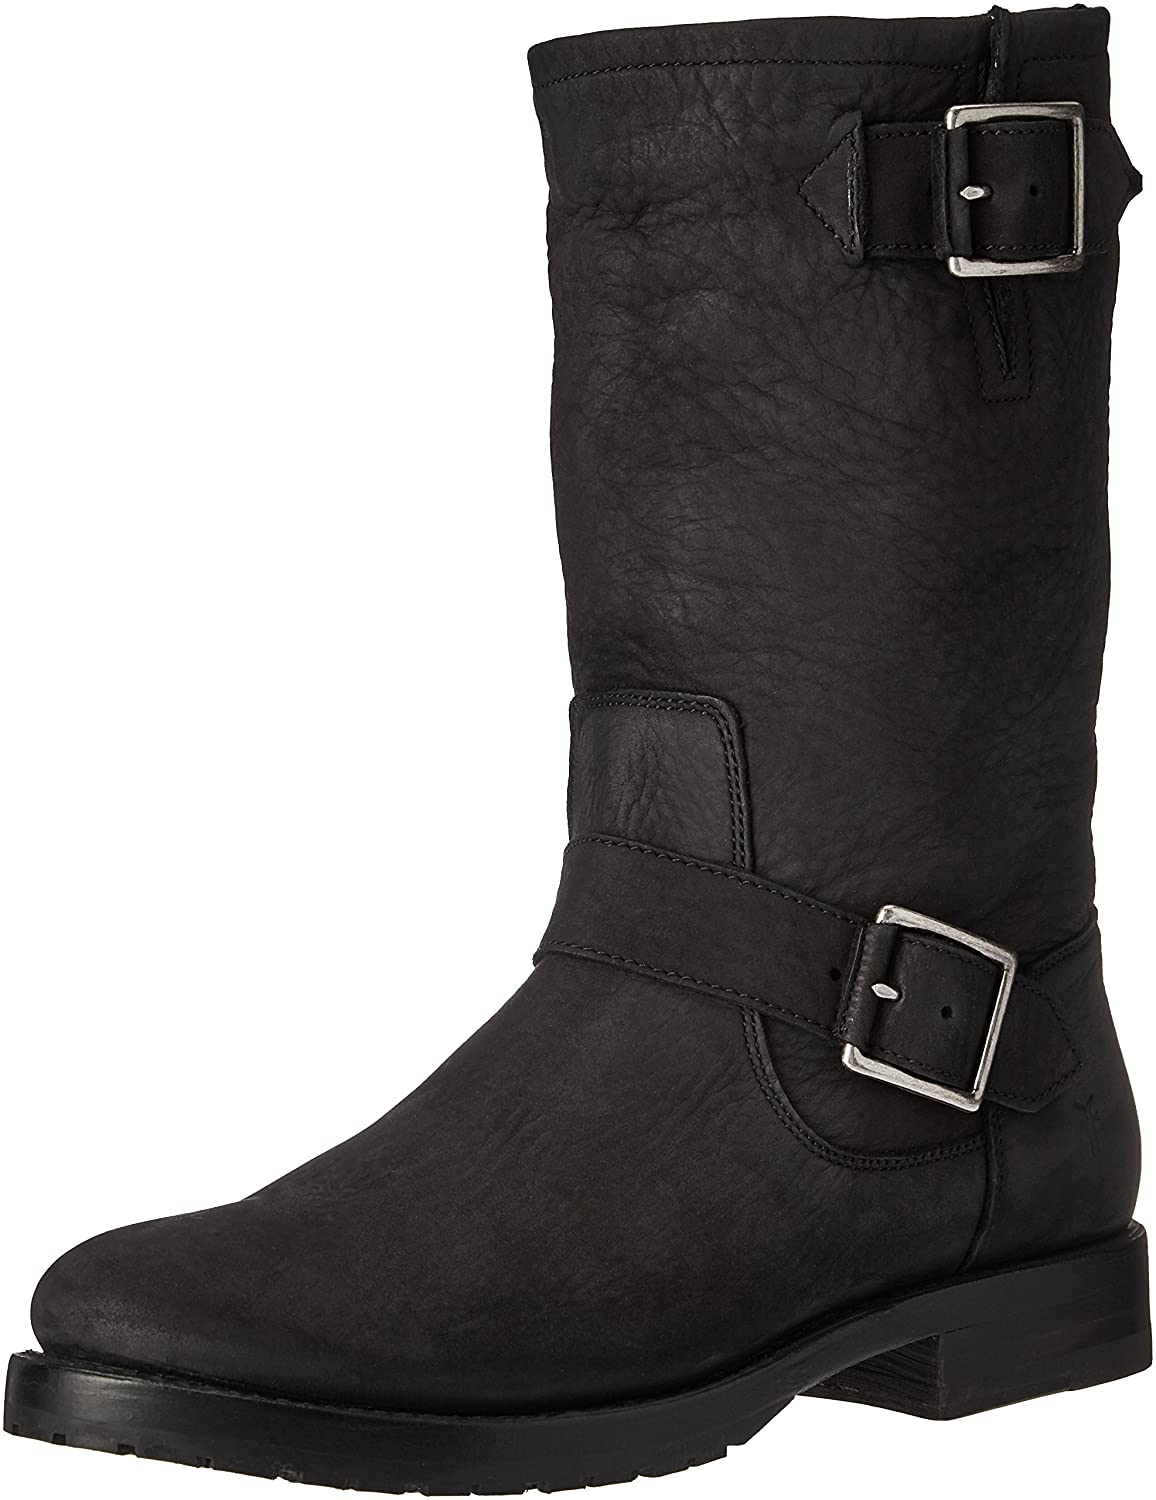 FRYE Women's Natalie Mid Engineer Boot B01HON9MKE 7 B(M) US|Black